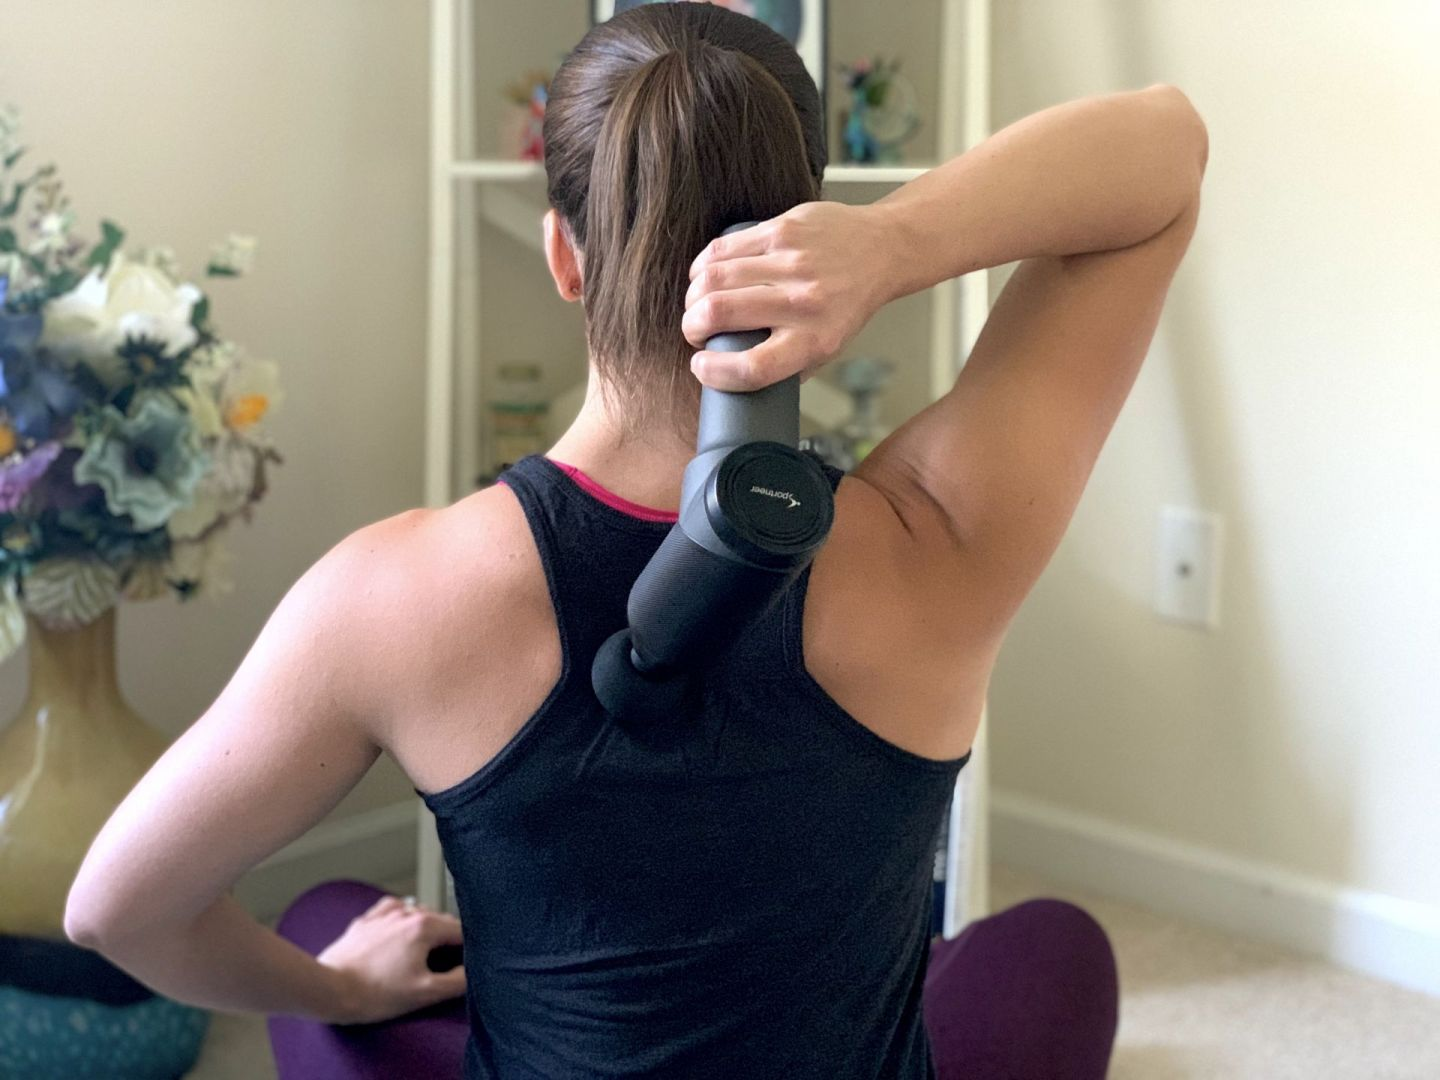 Curious About The Massage Gun Trend? Give This One A Try